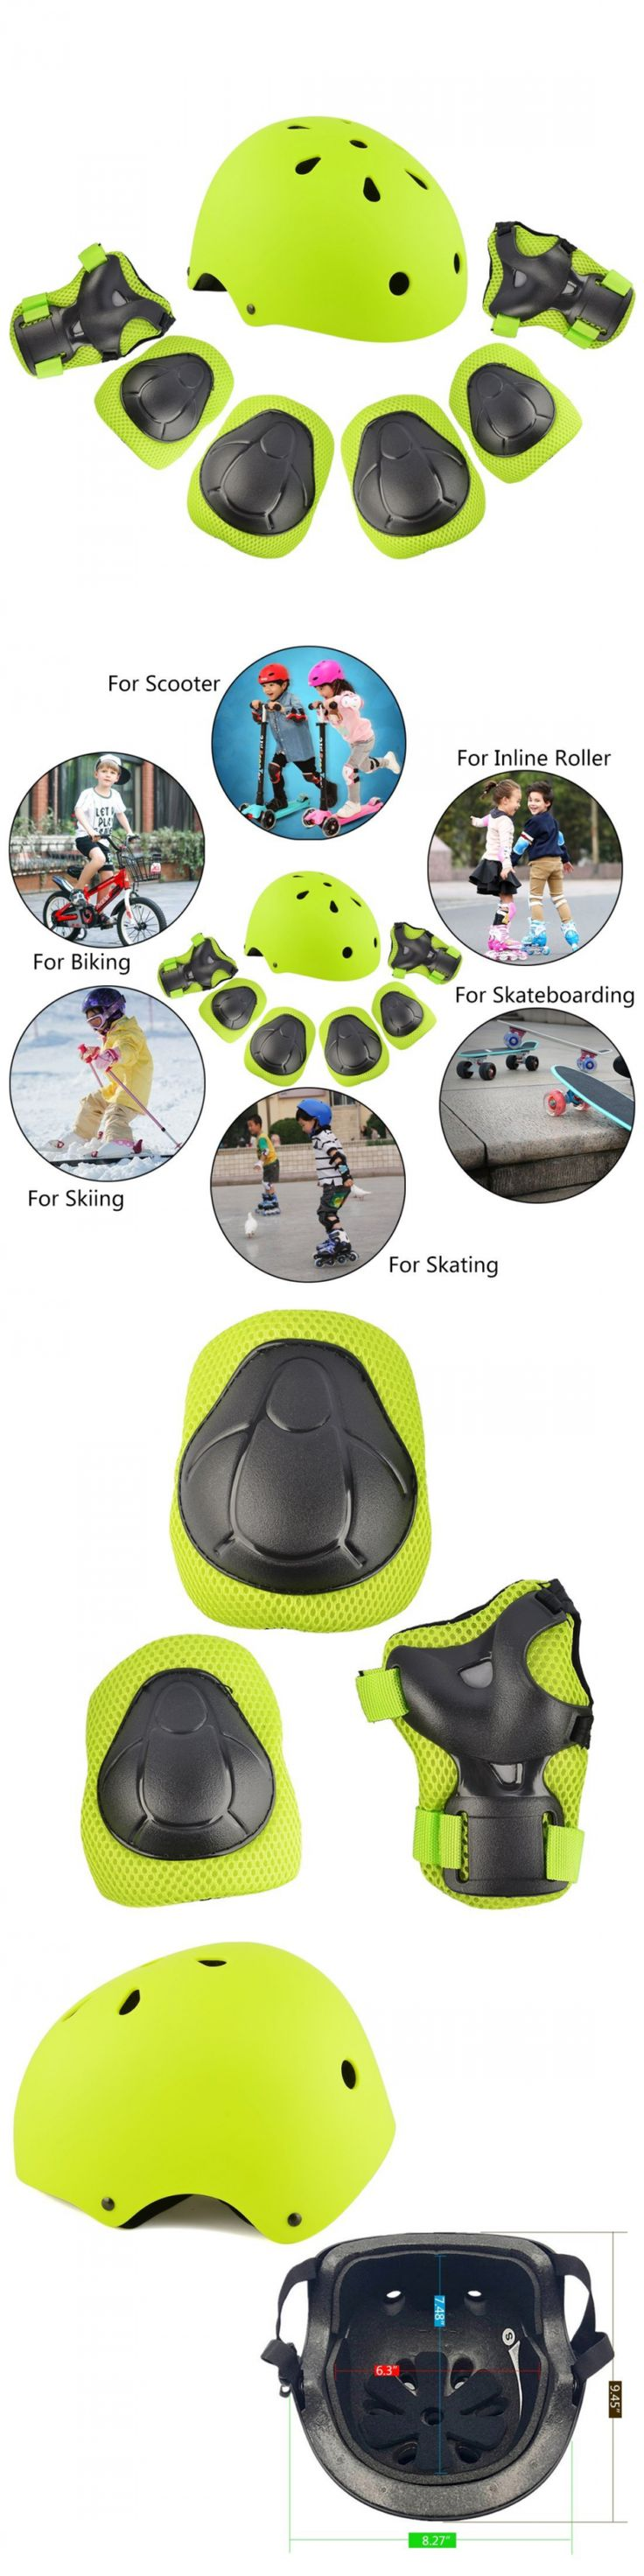 Protective Gear 16260: Protective For Kids Knee Pads And Helmet Skateboard Bicycle Scooter Roller Skate -> BUY IT NOW ONLY: $31.86 on eBay!